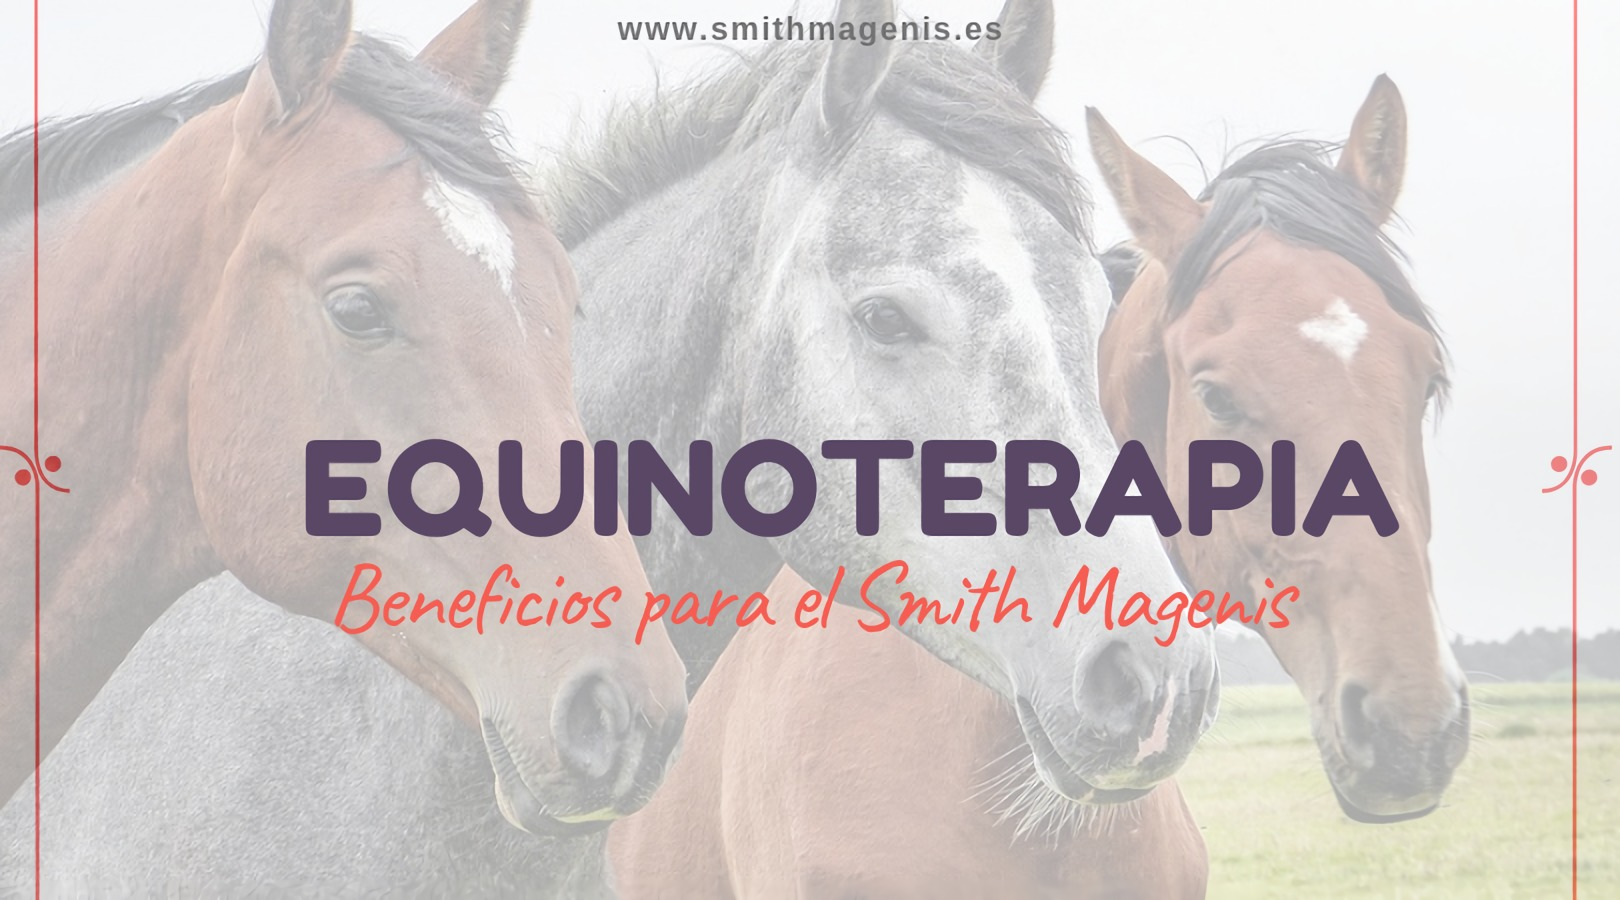 equinoterapiaparapersonasconSmithMagenis